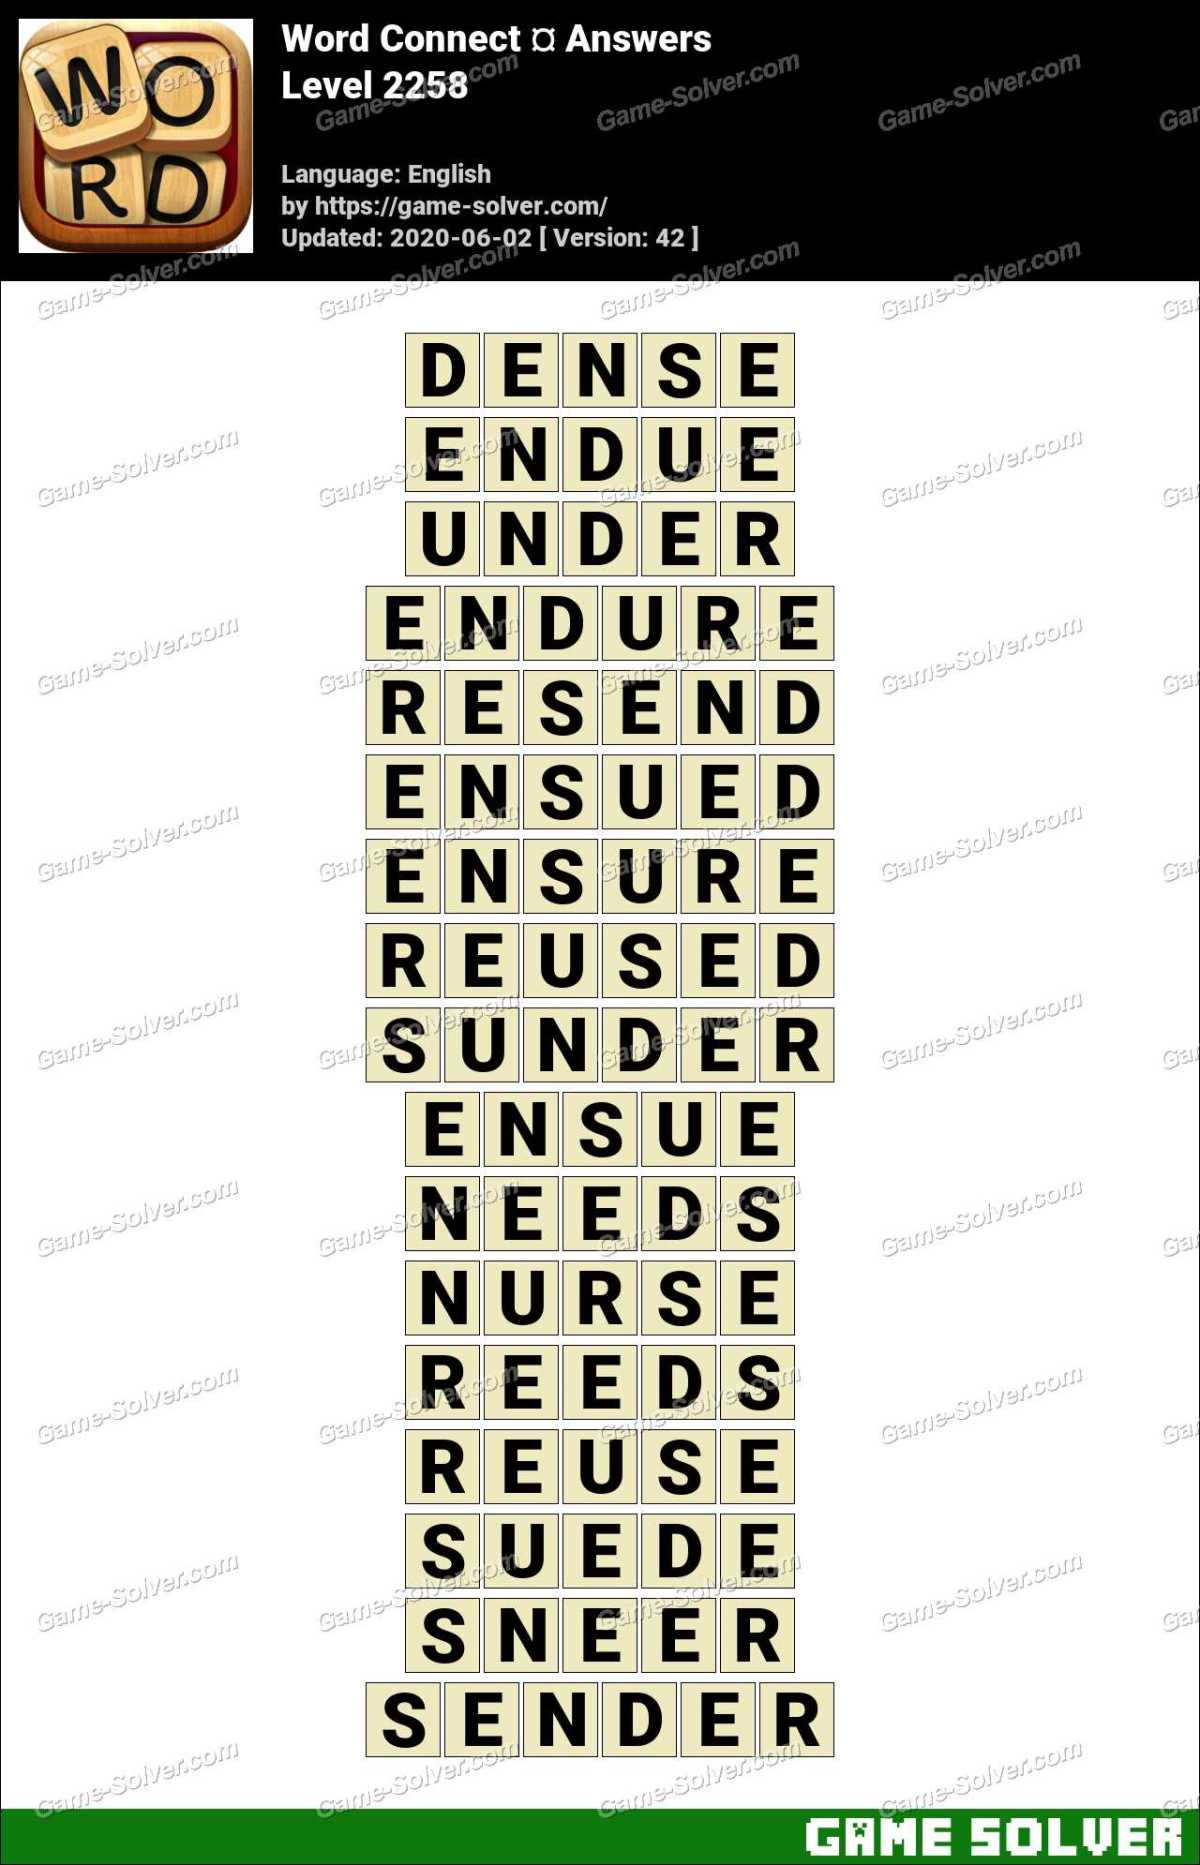 Word Connect Level 2258 Answers